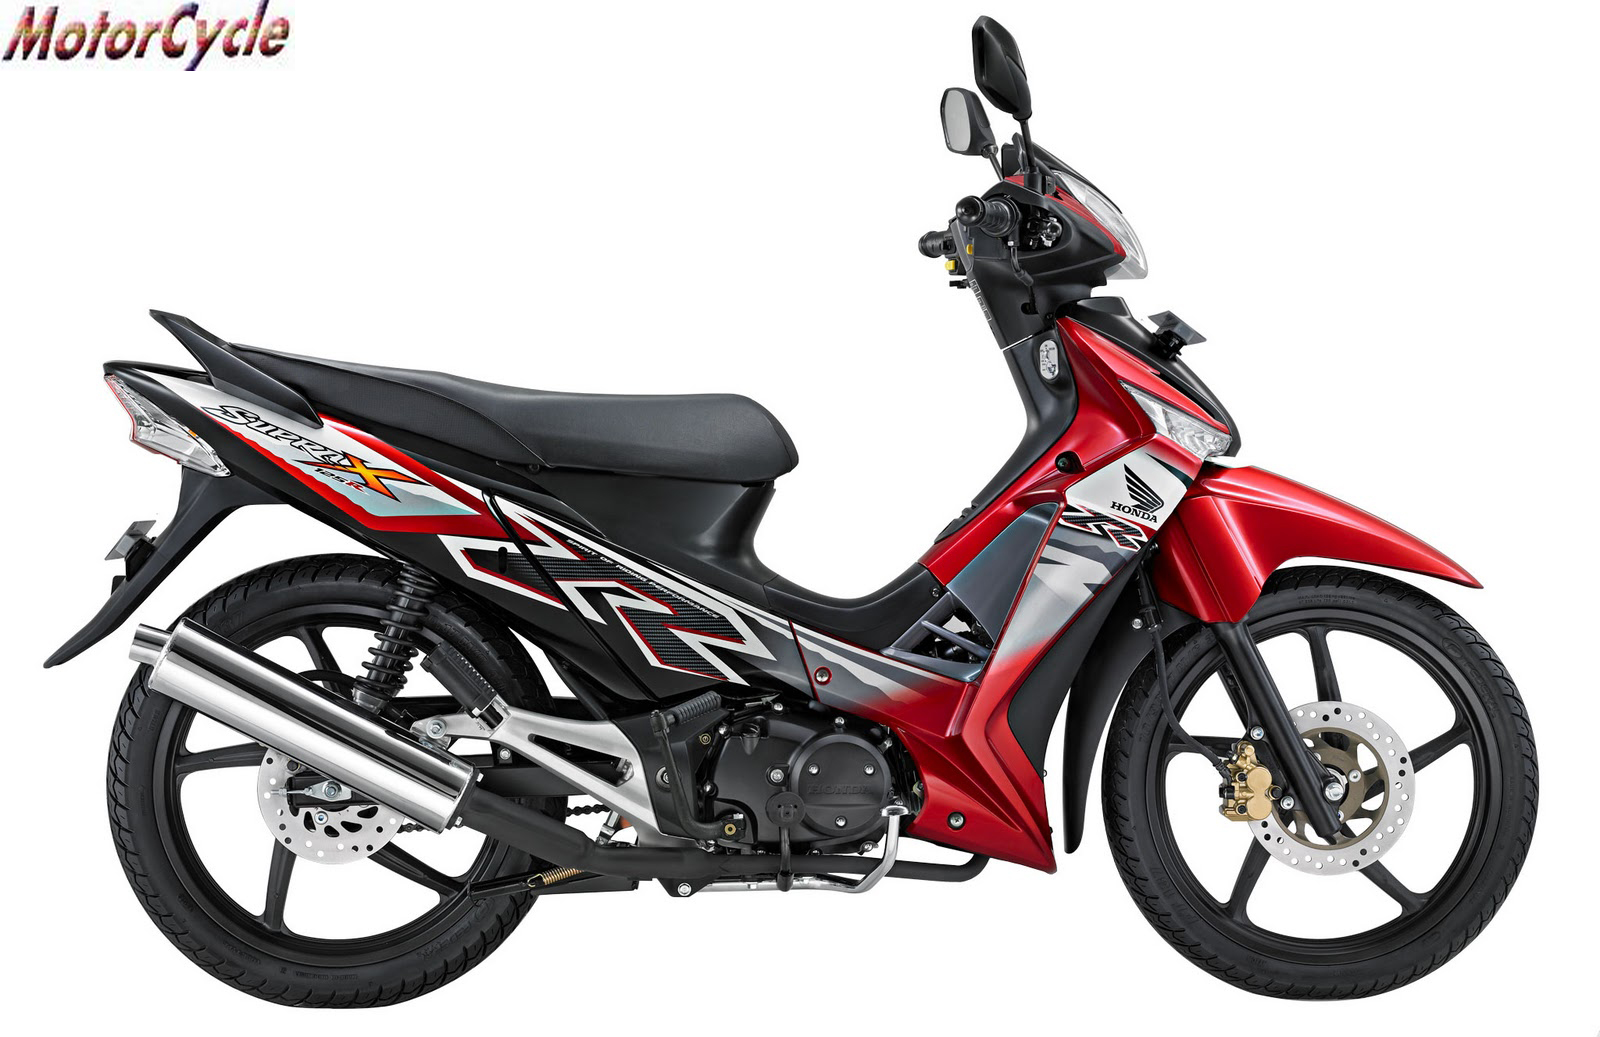 launching blade 2011, Honda is back in this AHM issued a new variant